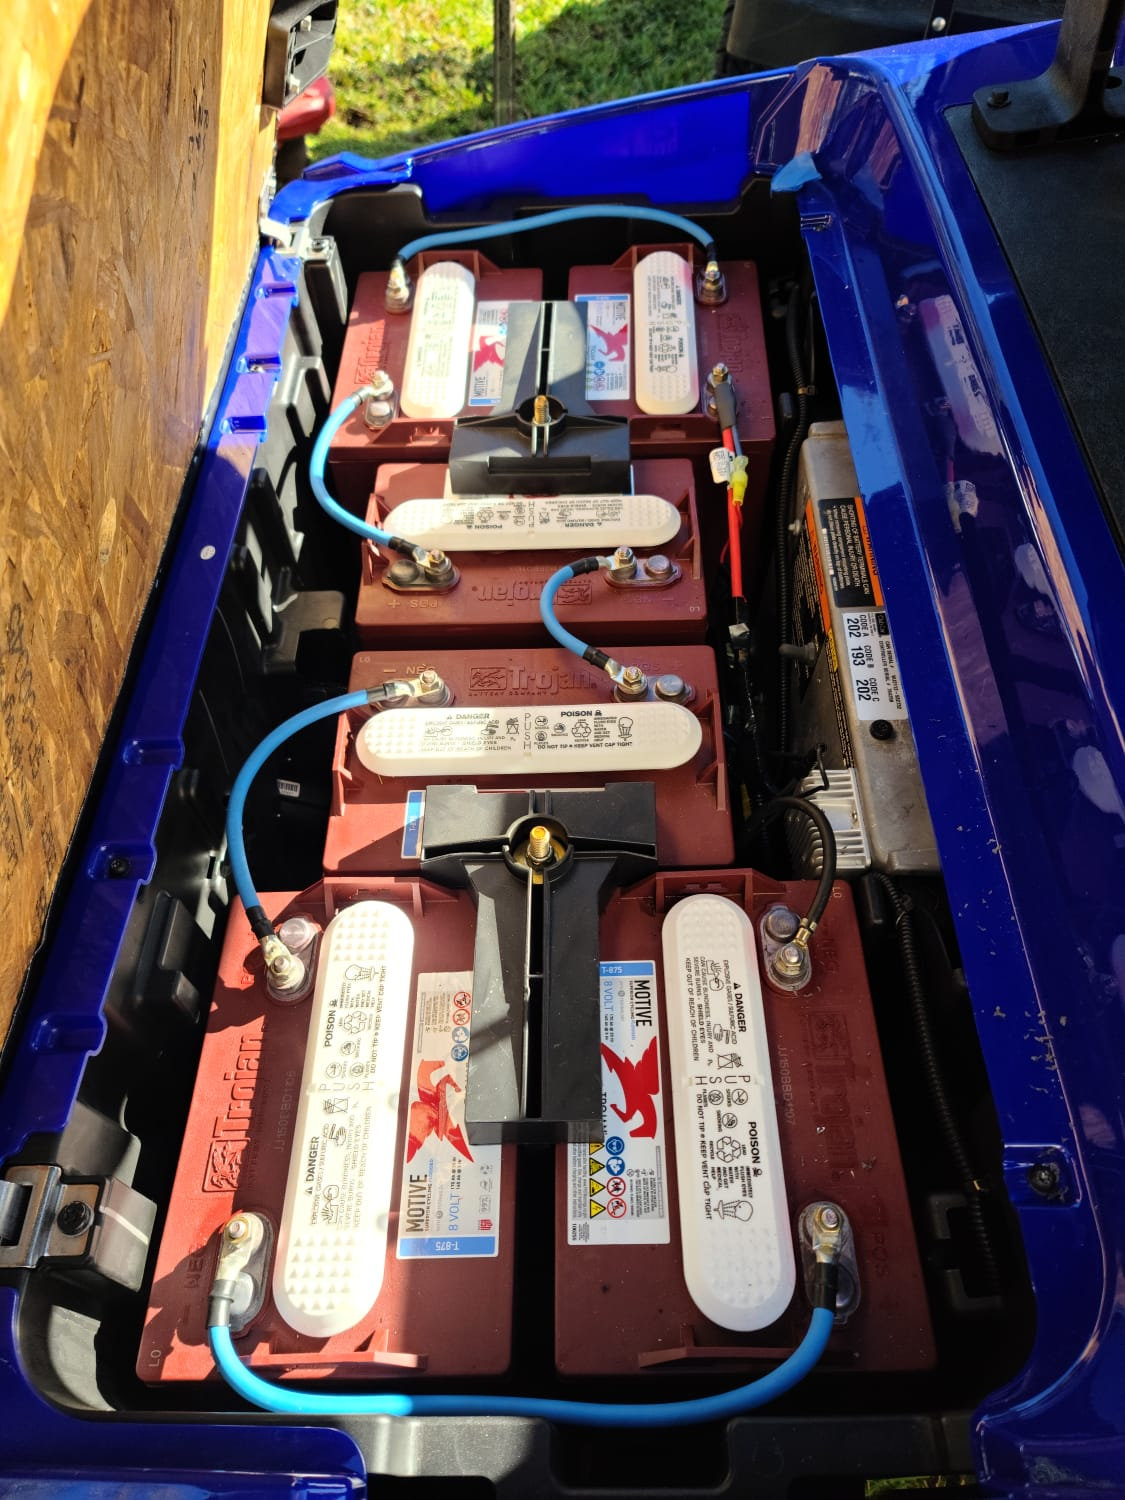 Annual Service - Electric Cart Models